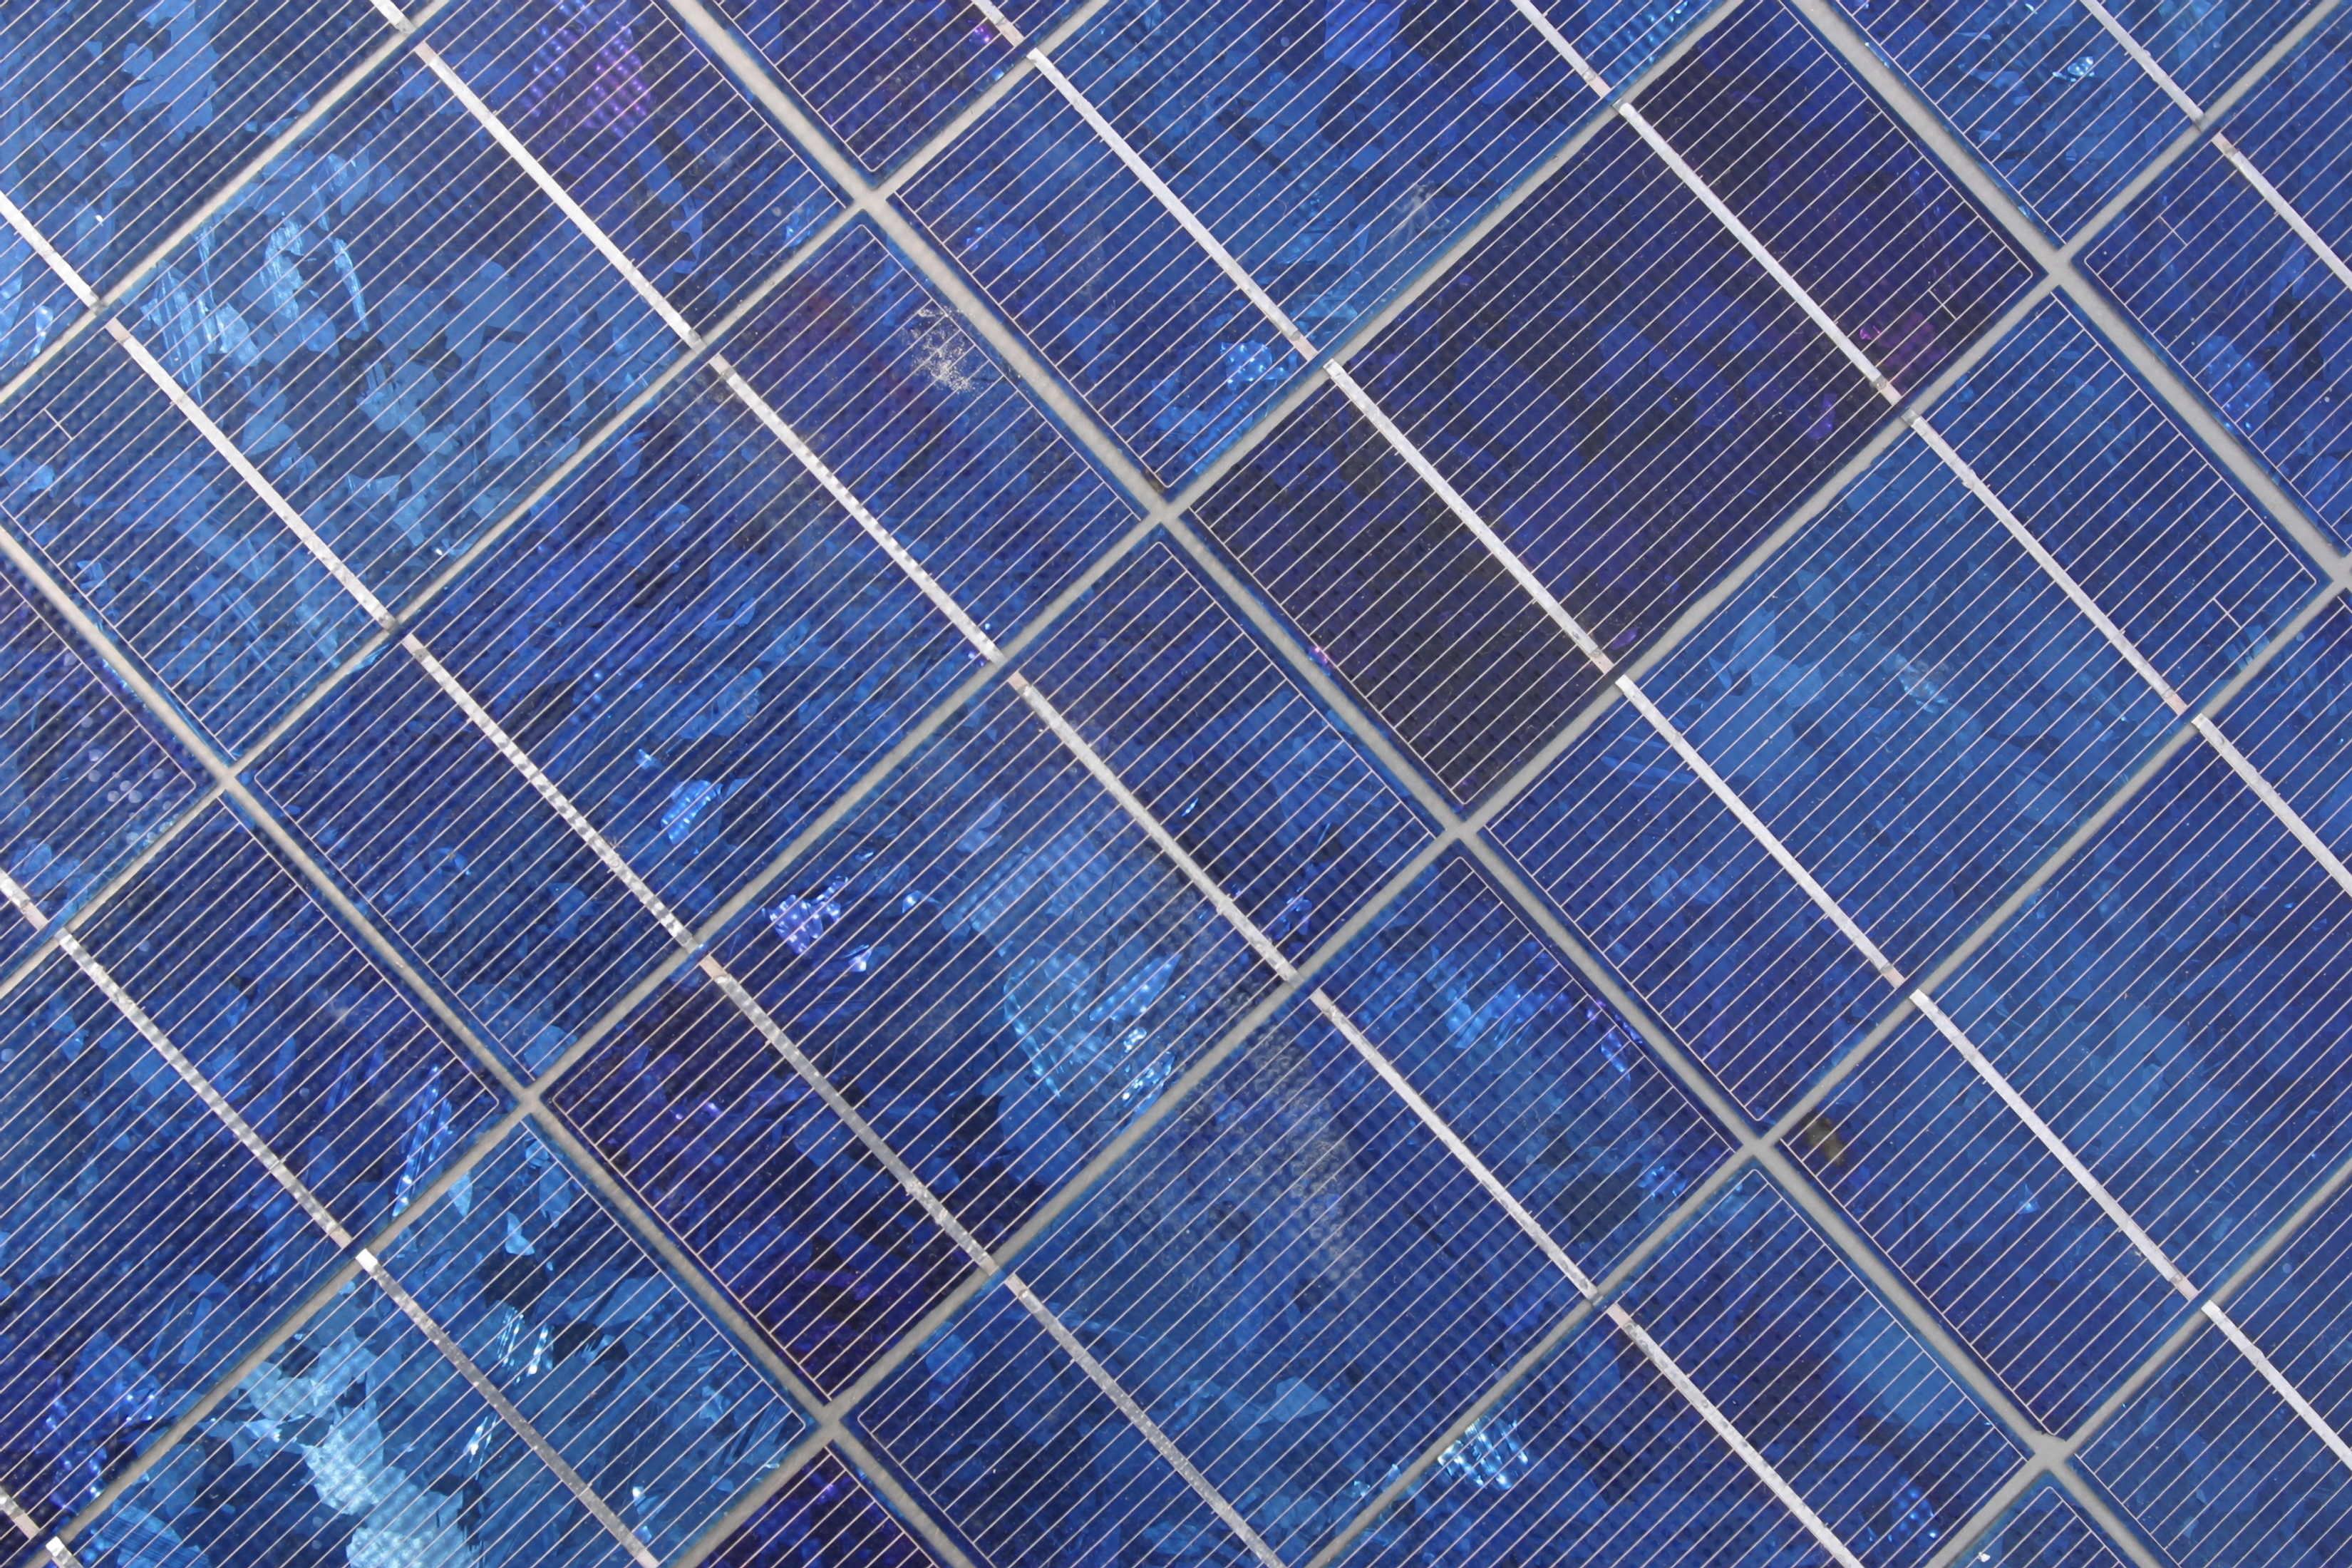 The Effect Of Wavelength On Photovoltaic Cells Sciencing